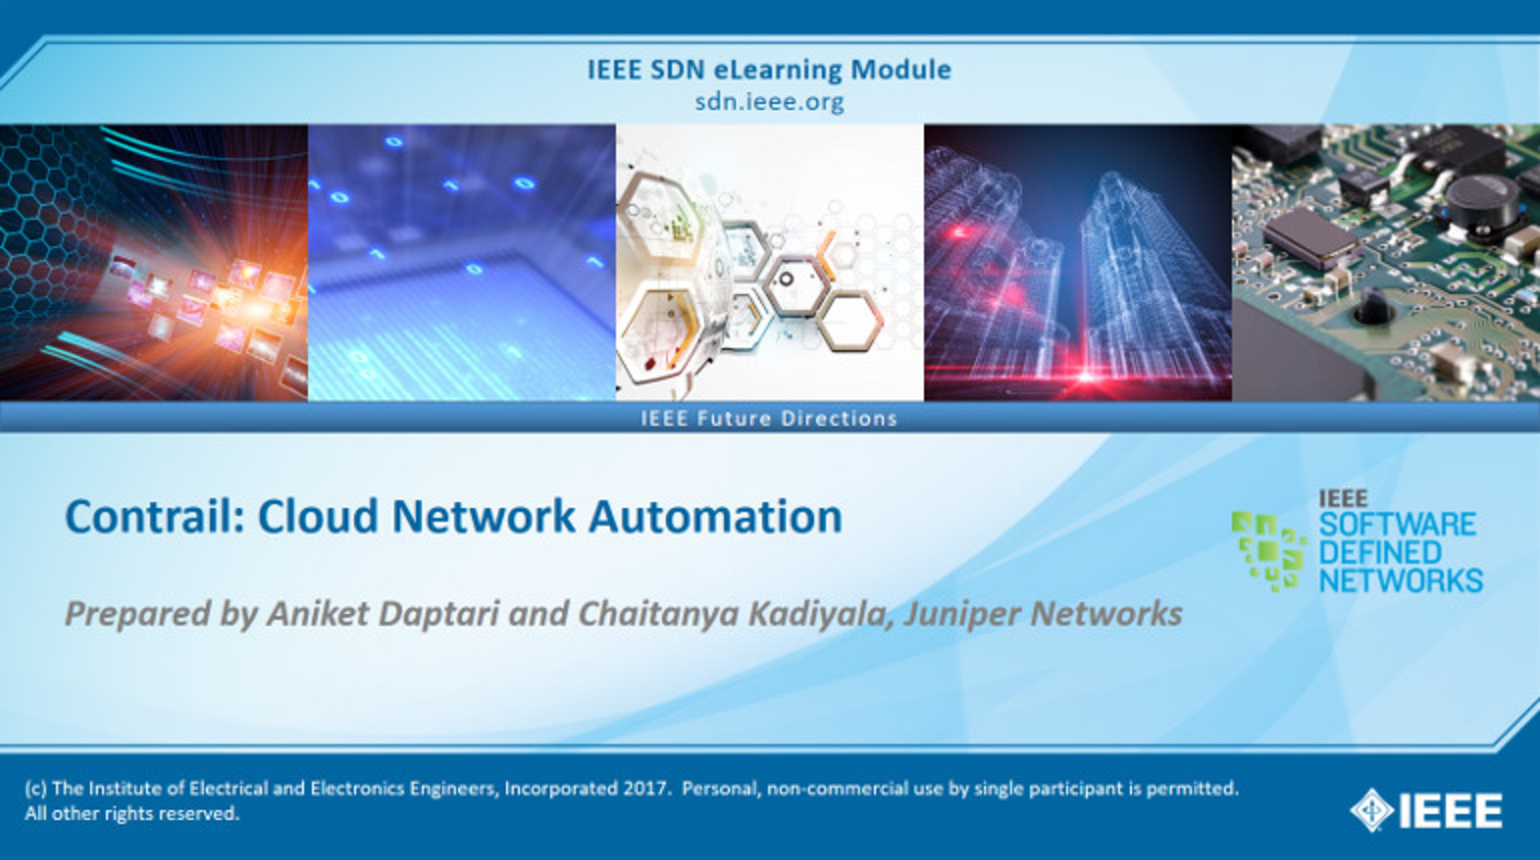 IEEE SDN: OpenContrail Module 1 - Contrail: Cloud Network Automation